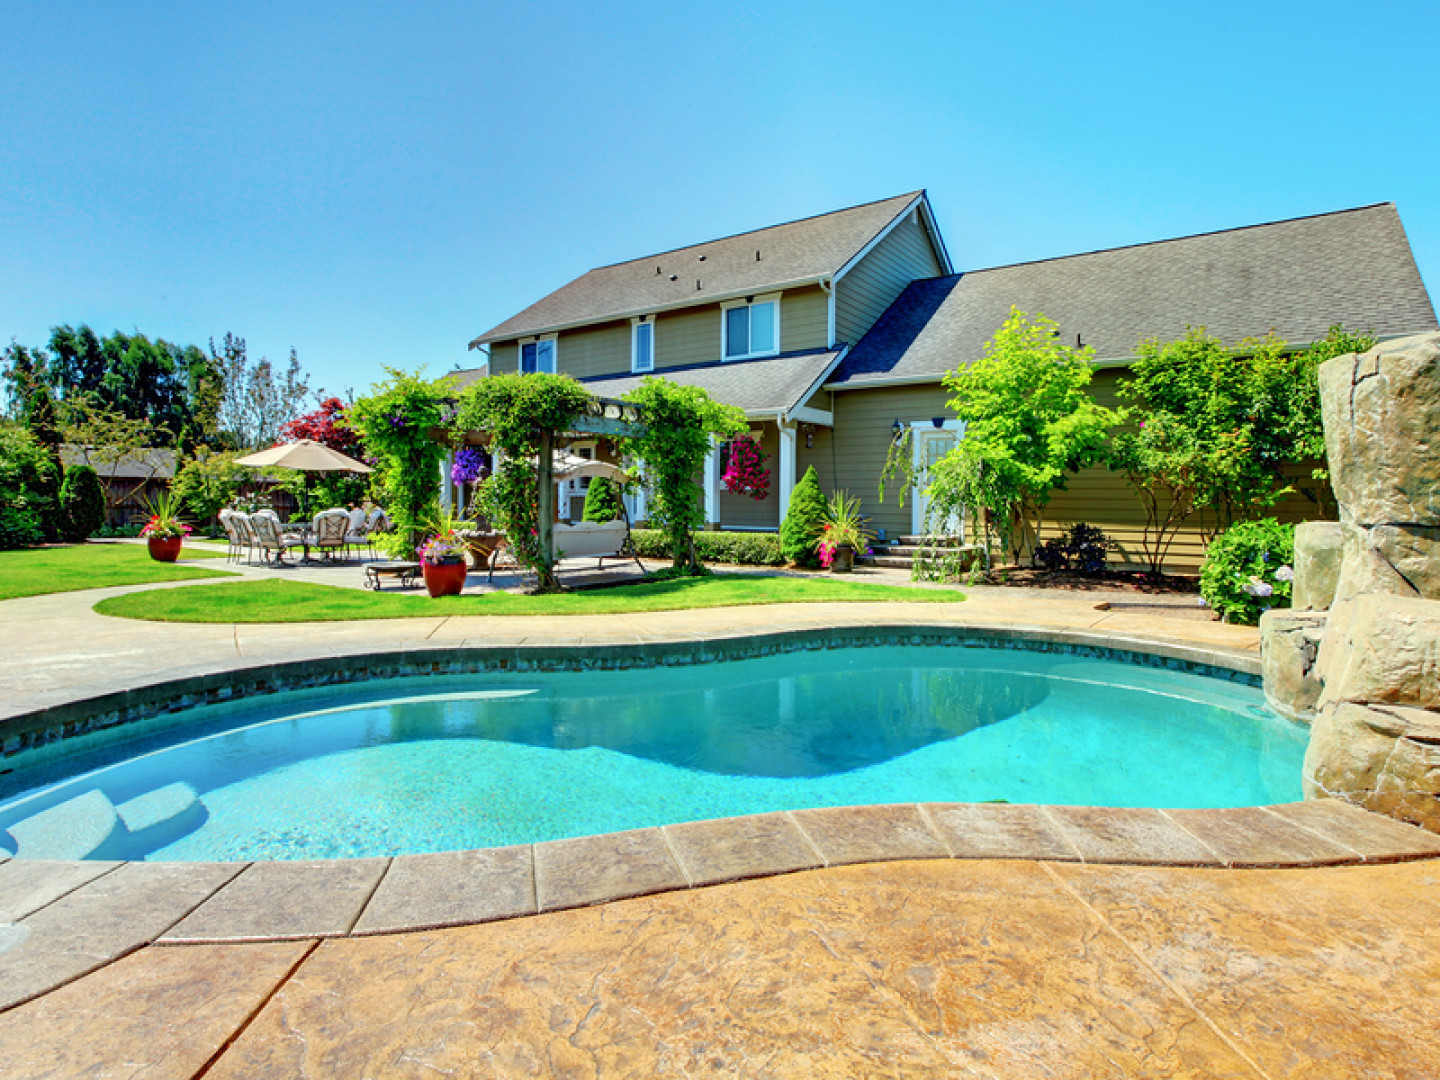 Prevent structural damage with pool repair services